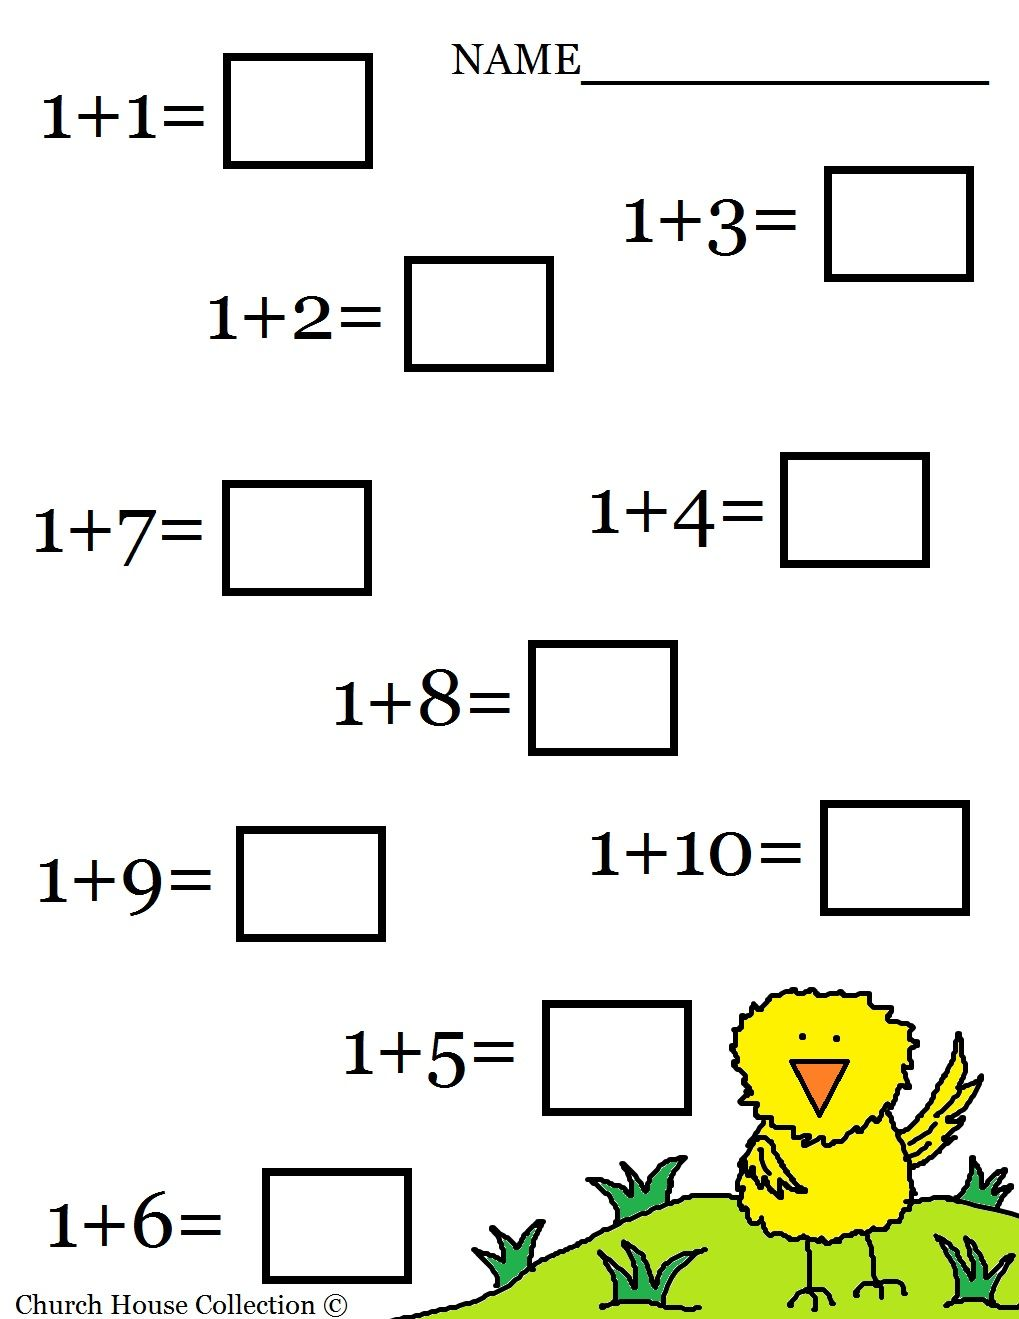 Proatmealus  Wonderful  Images About Worksheets  Math On Pinterest  Math Sheets  With Gorgeous  Images About Worksheets  Math On Pinterest  Math Sheets Math Worksheets For Kindergarten And Simple Addition With Awesome Multiplication Worksheets Coloring Also Butterfly Life Cycle Worksheets In Addition Right Triangle Congruence Worksheet And Merging Worksheets In Excel As Well As Mercantilism Worksheet Additionally Shapes Kindergarten Worksheets From Pinterestcom With Proatmealus  Gorgeous  Images About Worksheets  Math On Pinterest  Math Sheets  With Awesome  Images About Worksheets  Math On Pinterest  Math Sheets Math Worksheets For Kindergarten And Simple Addition And Wonderful Multiplication Worksheets Coloring Also Butterfly Life Cycle Worksheets In Addition Right Triangle Congruence Worksheet From Pinterestcom